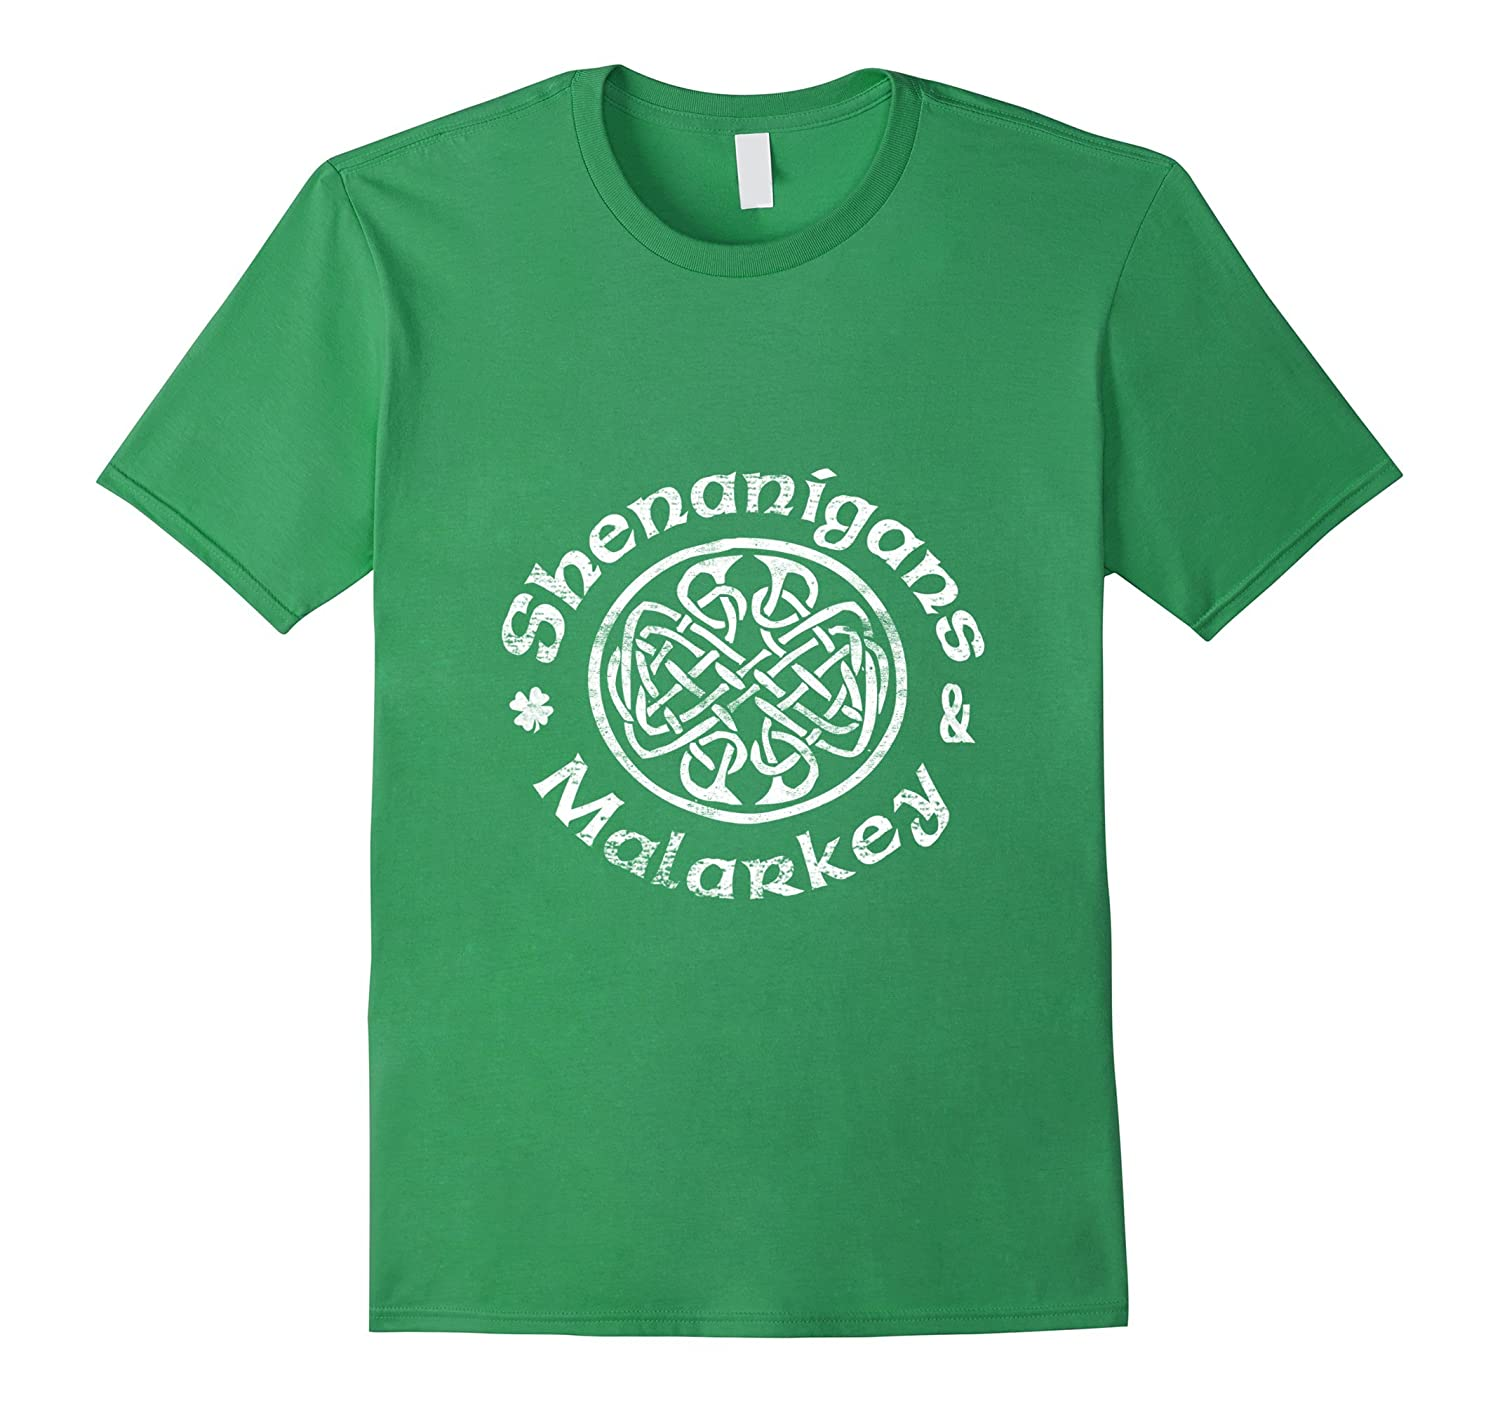 2c13f516 Shenanigans & Malarkey St Patrick's Day Irish Ireland-ah my shirt one gift